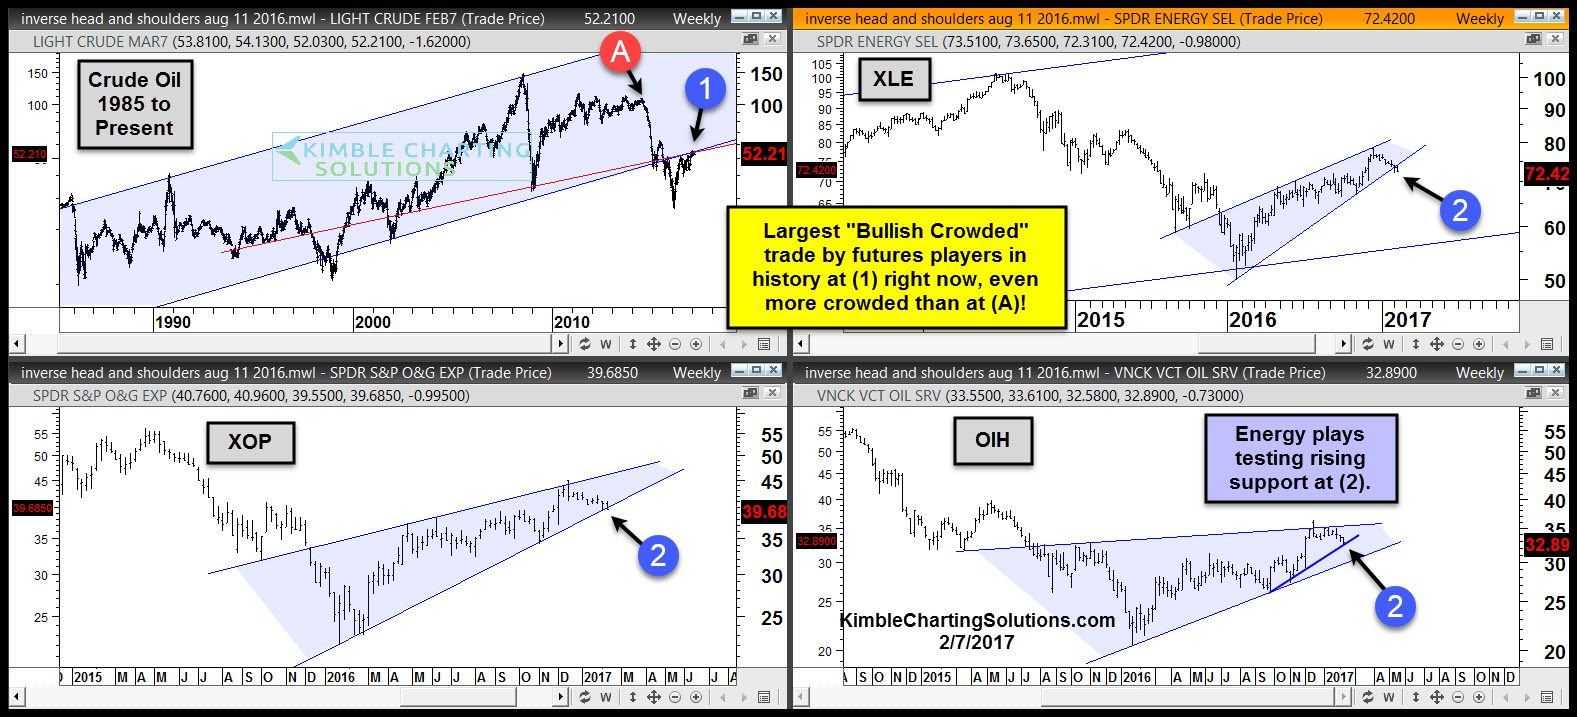 crude-oil-testing-resistance-as-most-bullish-crowded-trade-in-history-in-play-feb-7